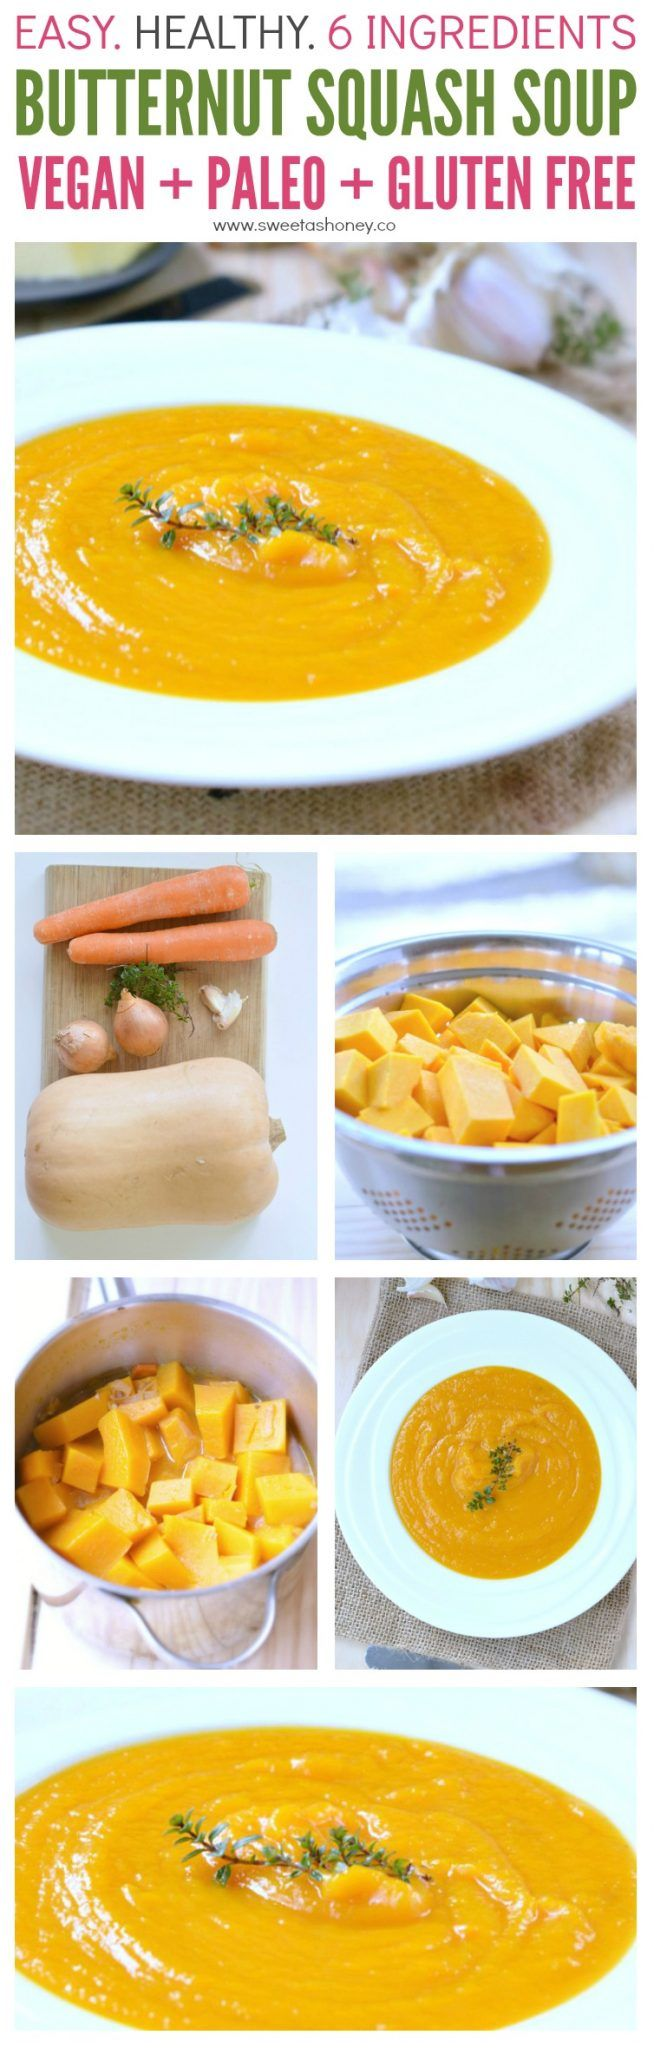 Easy Healthy Butternut Squash Soup with only 6 ingredients. Vegan Recipe, paleo friendly, gluten free and clean eating approved. A kids favorite soup.